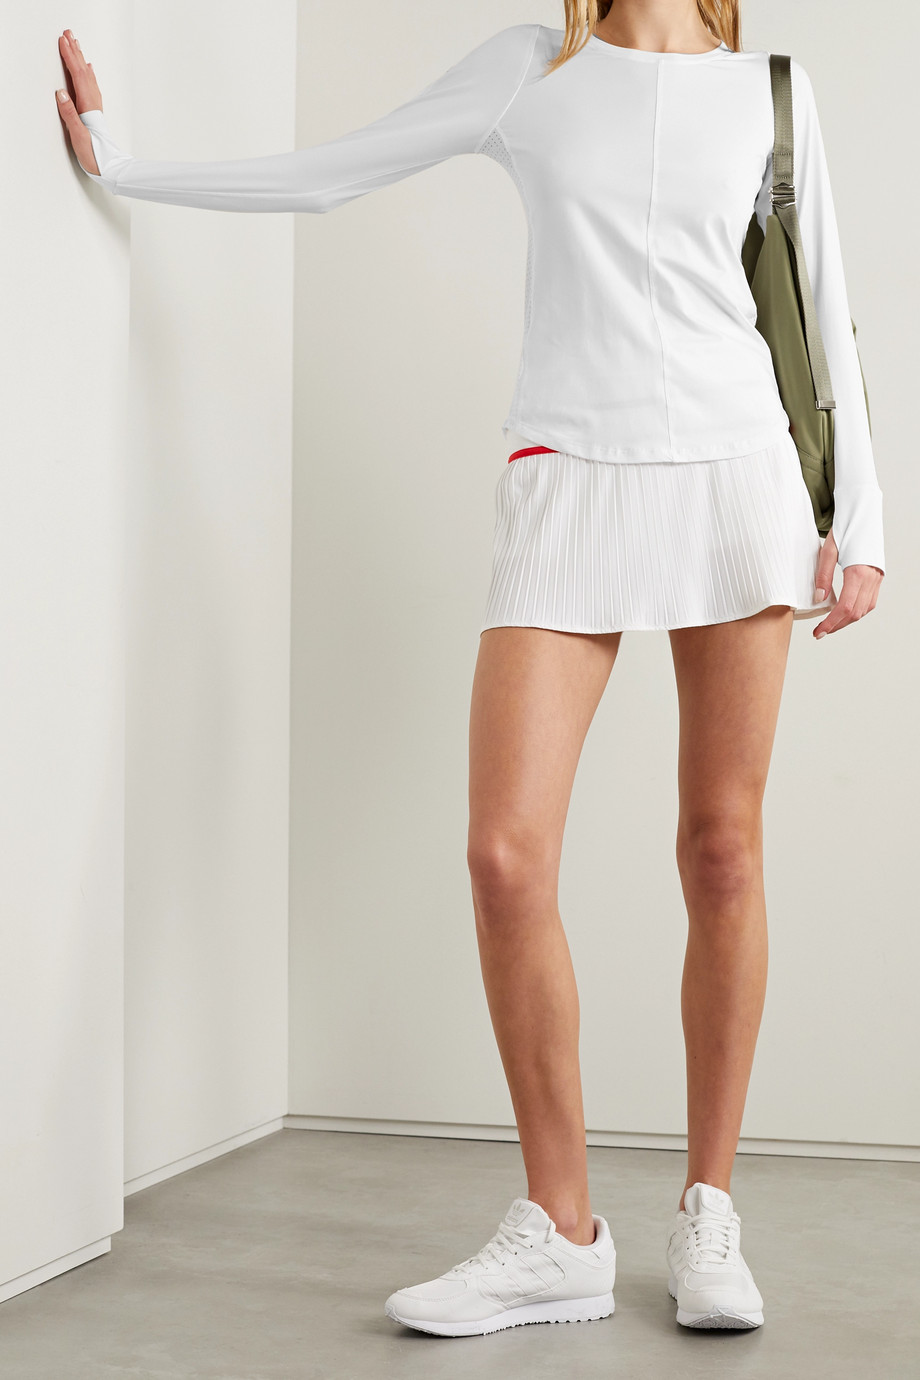 L'ETOILE SPORT Mesh-paneled stretch-jersey top